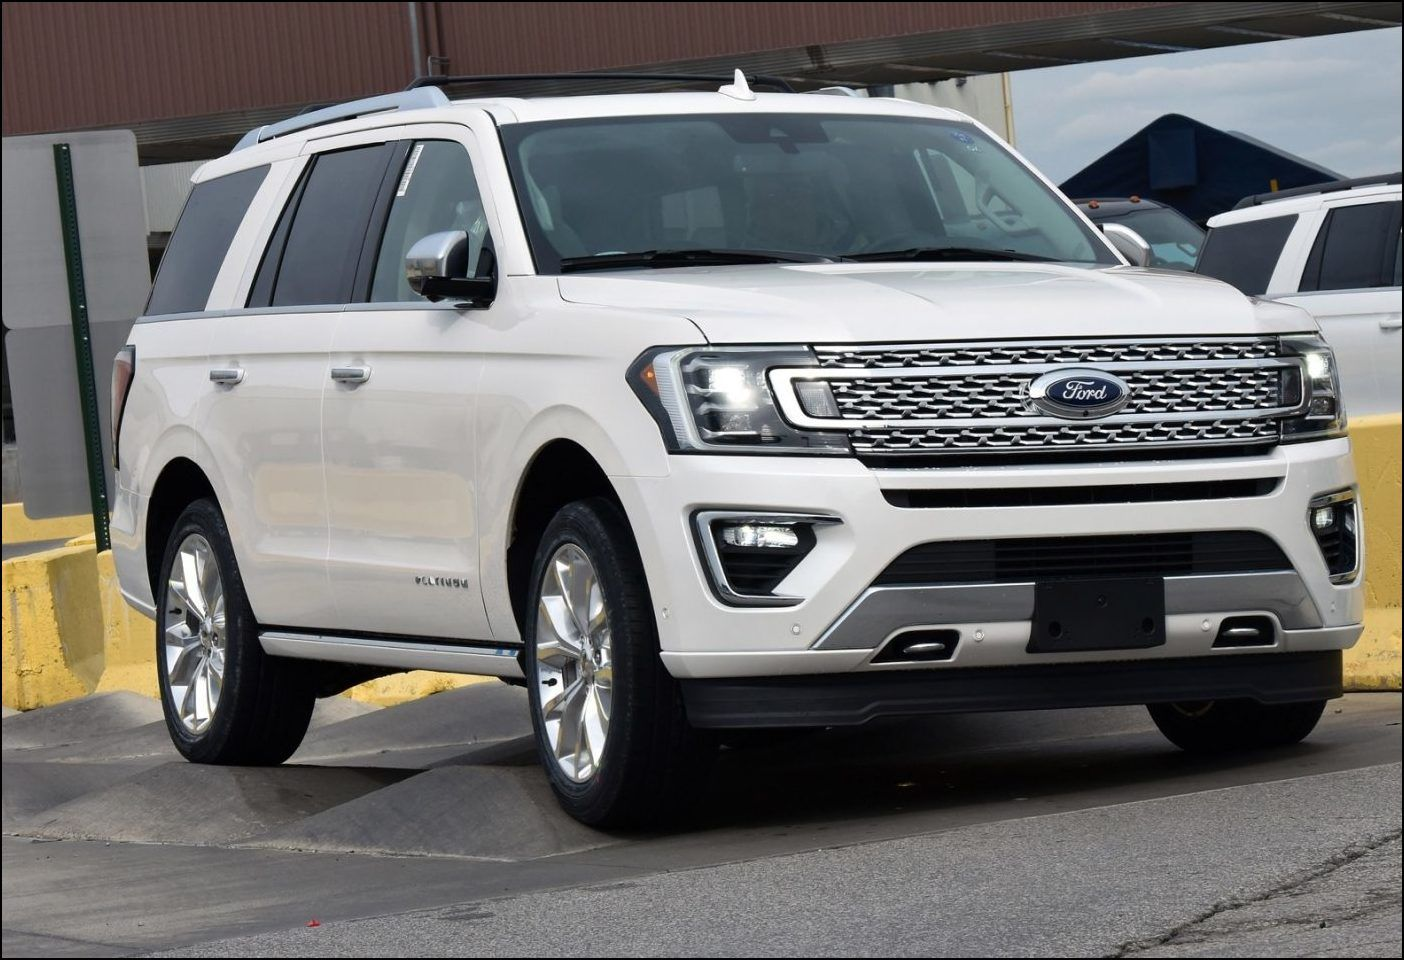 2022 Ford Expedition Review With Images Ford Expedition 2019